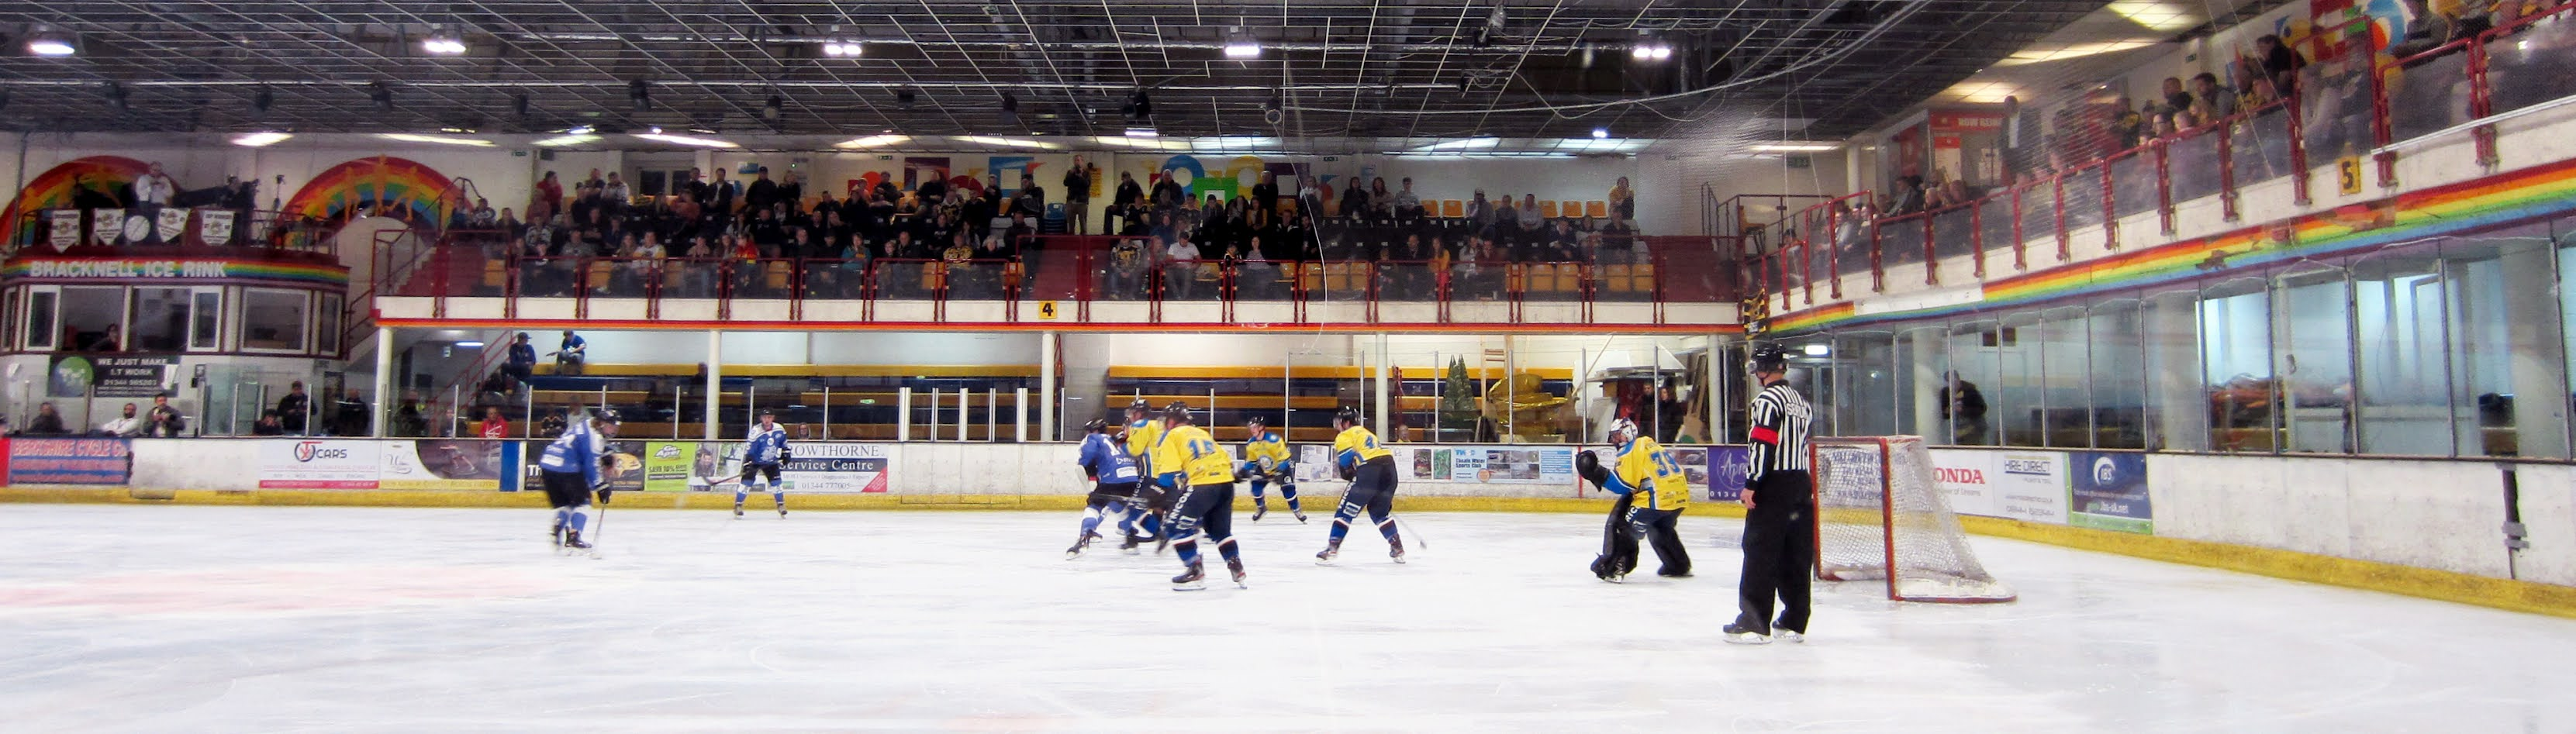 View from downstairs at the Bracknell Ice Rink